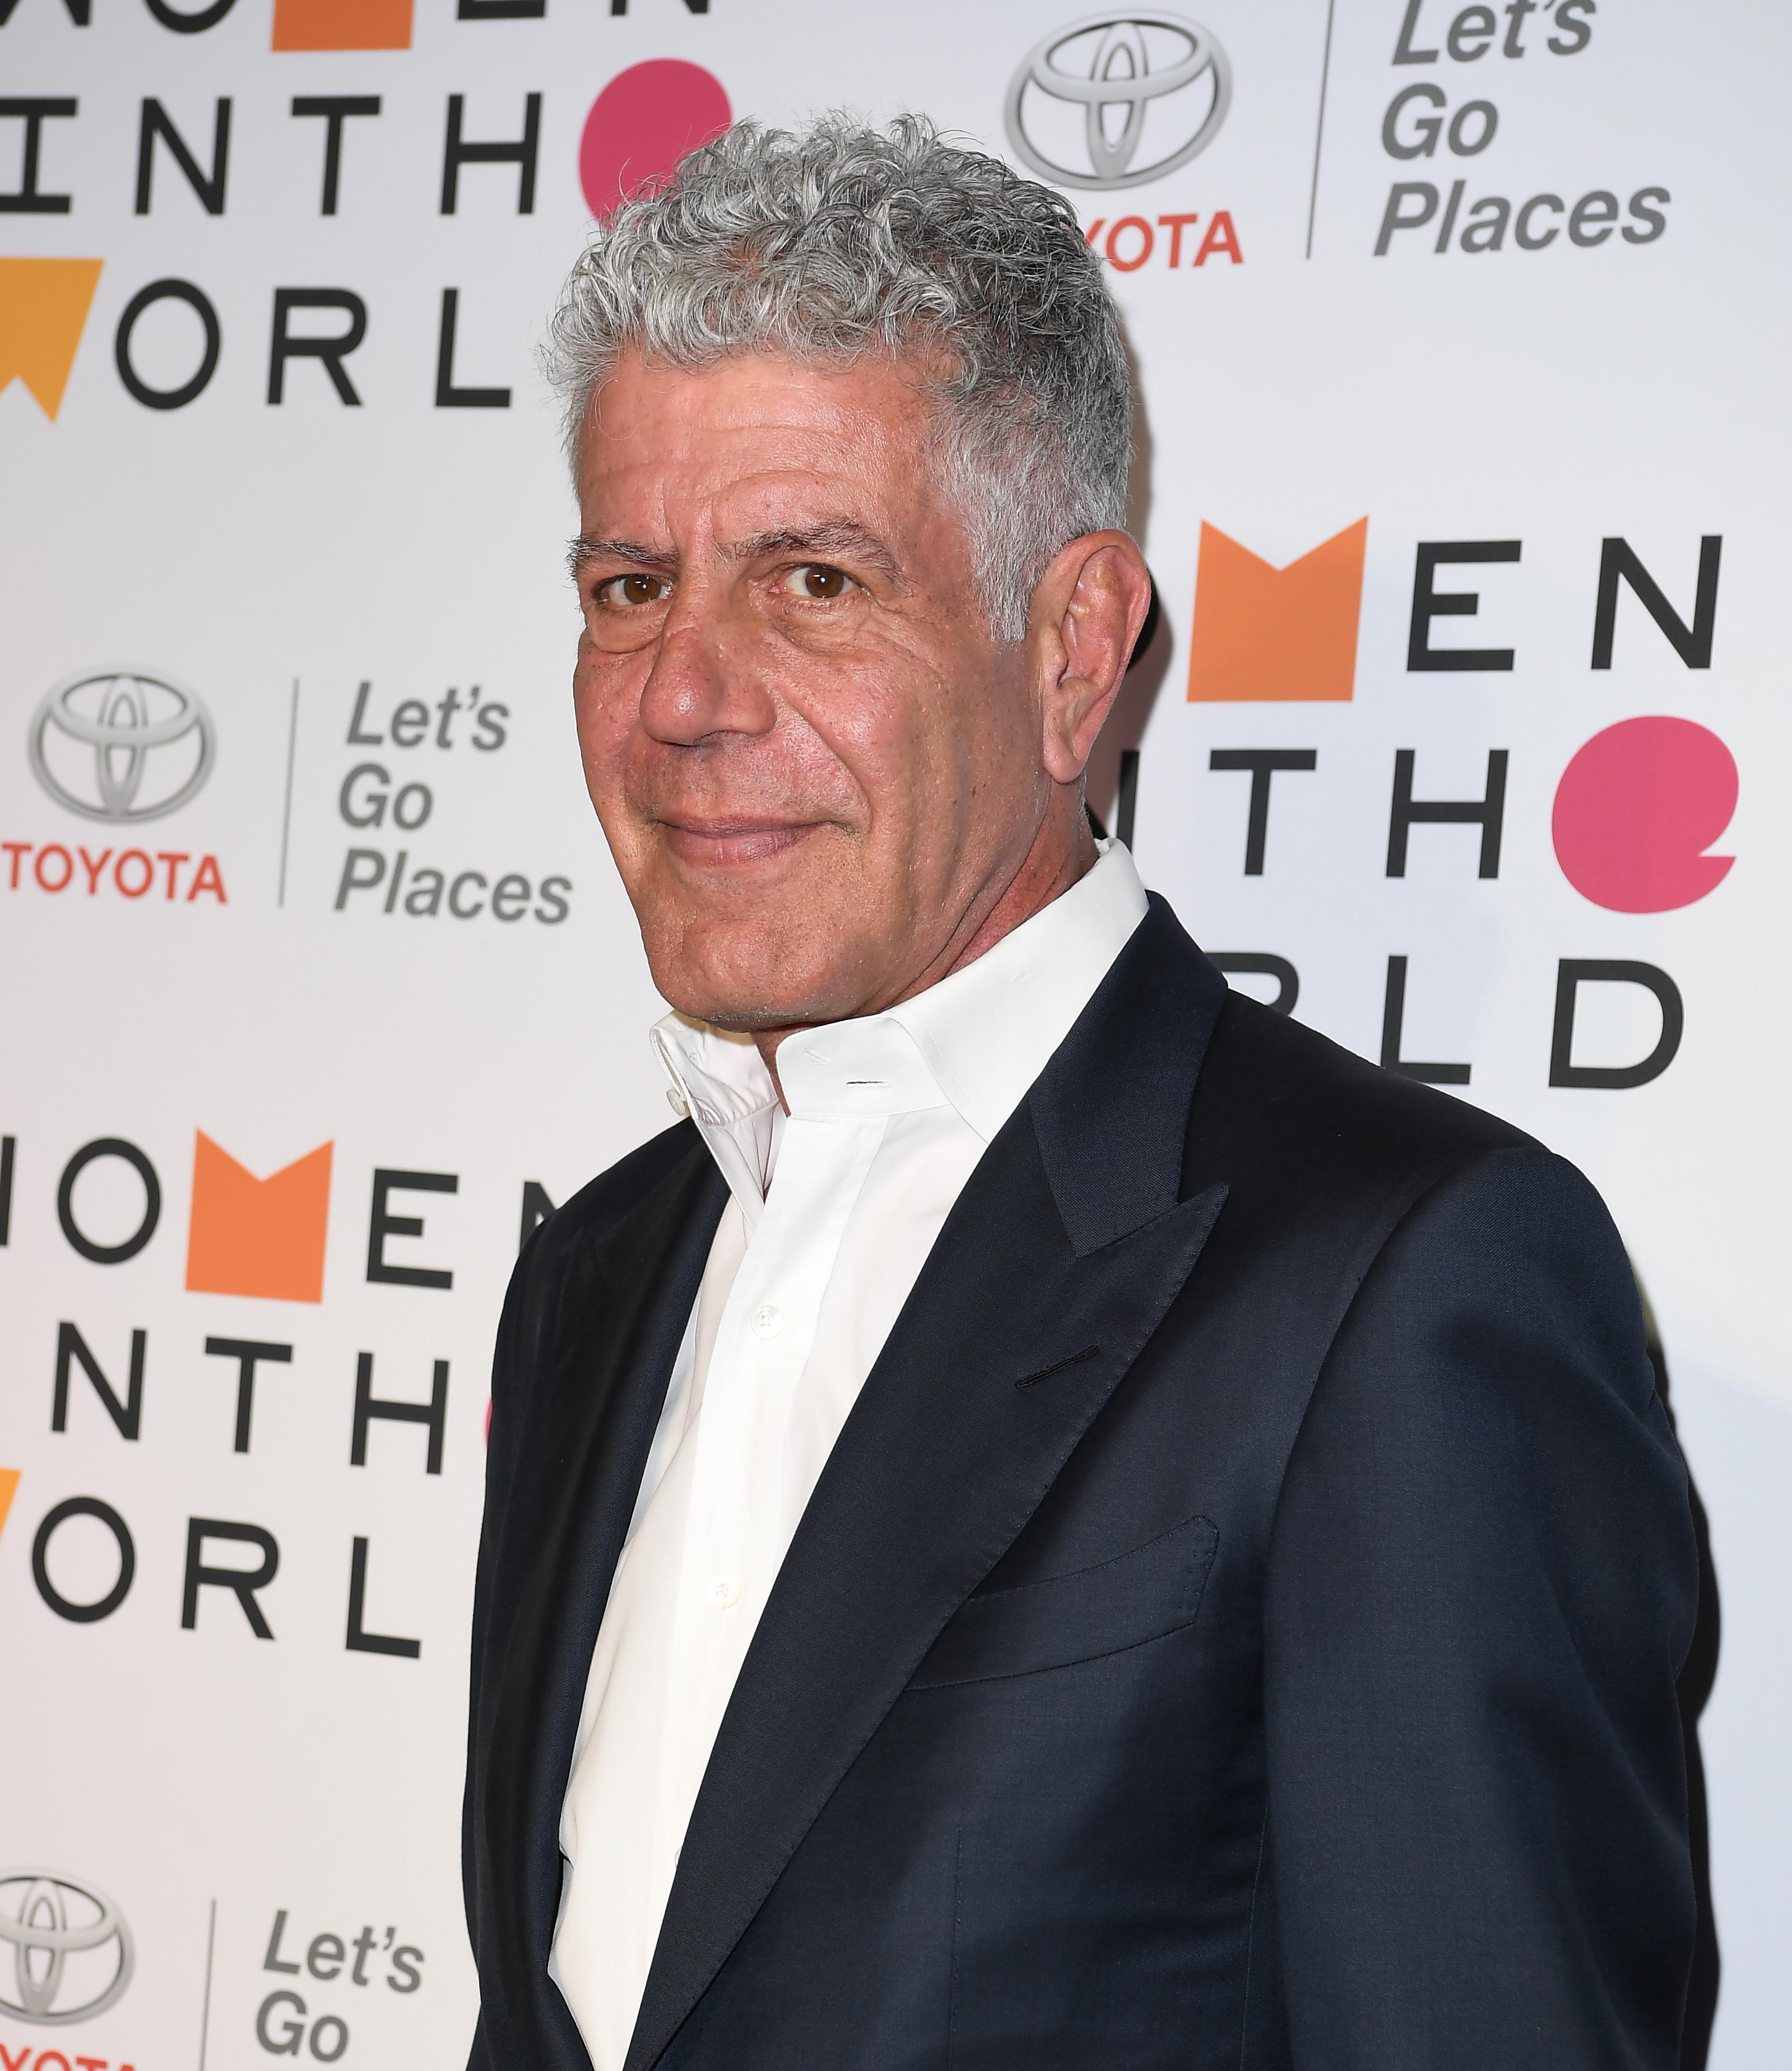 Anthony Bourdain attends the 2018 Women In The World Summit at Lincoln Center on April 12, 2018 in New York City.  / AFP PHOTO / ANGELA WEISS        (Photo credit should read ANGELA WEISS/AFP/Getty Images)